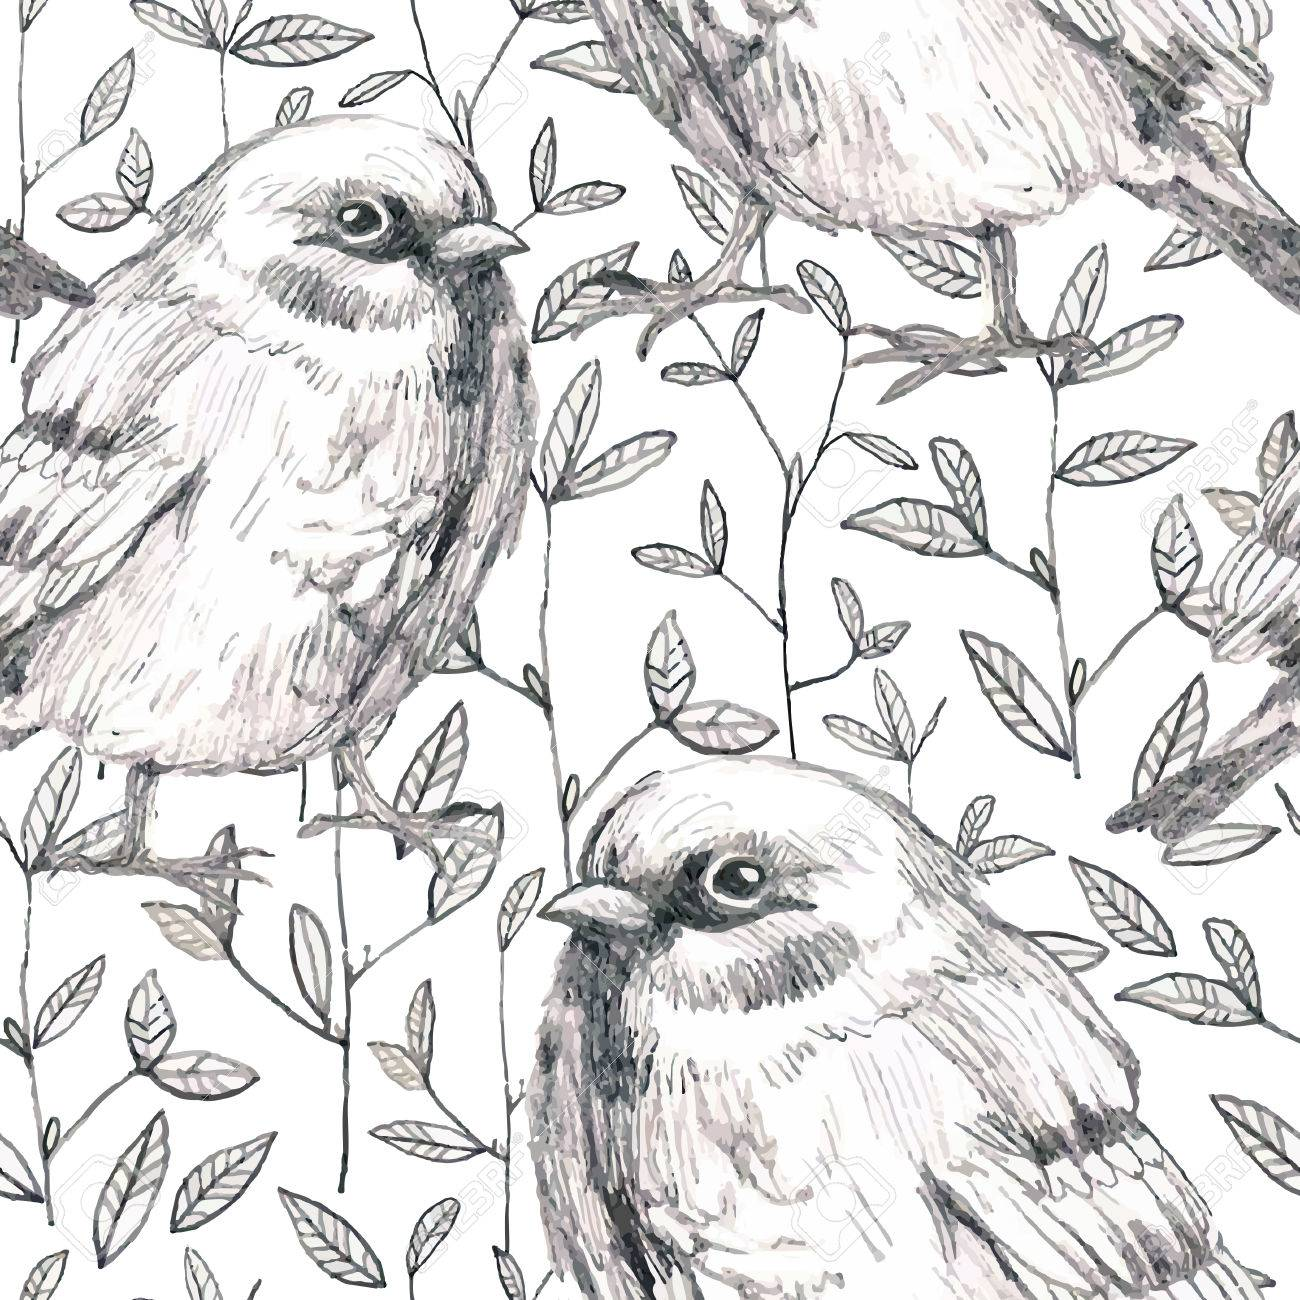 1300x1300 Pencil Sketch Seamless Pattern With Flowers And Bird Sparrow